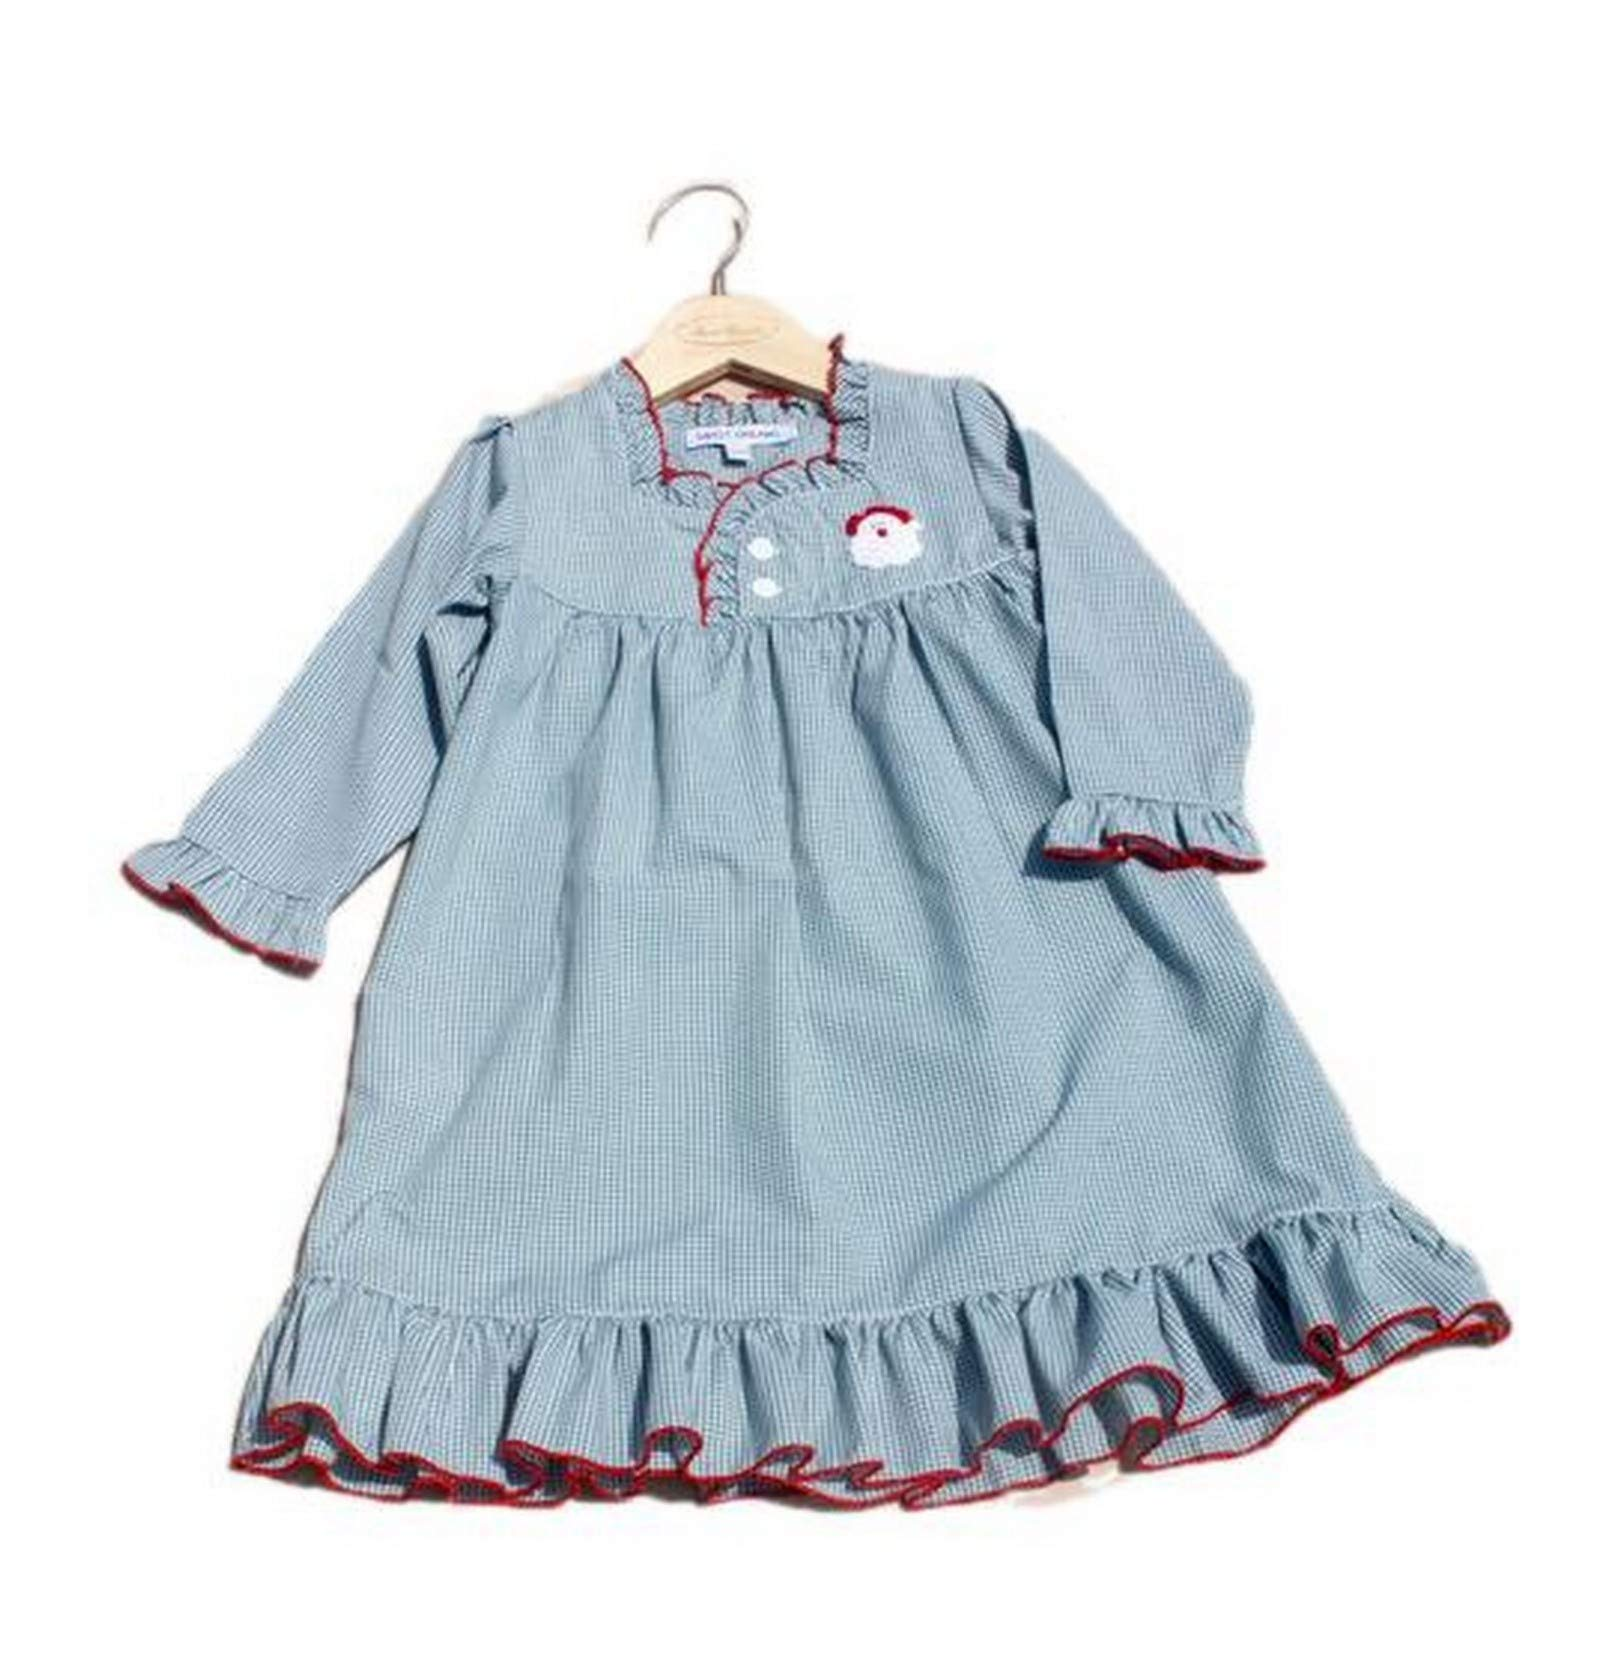 Sweet Dreams Santa Embroidered Green Gingham Checked Christmas Girls Nightgown 6Y by Sweet Dreams